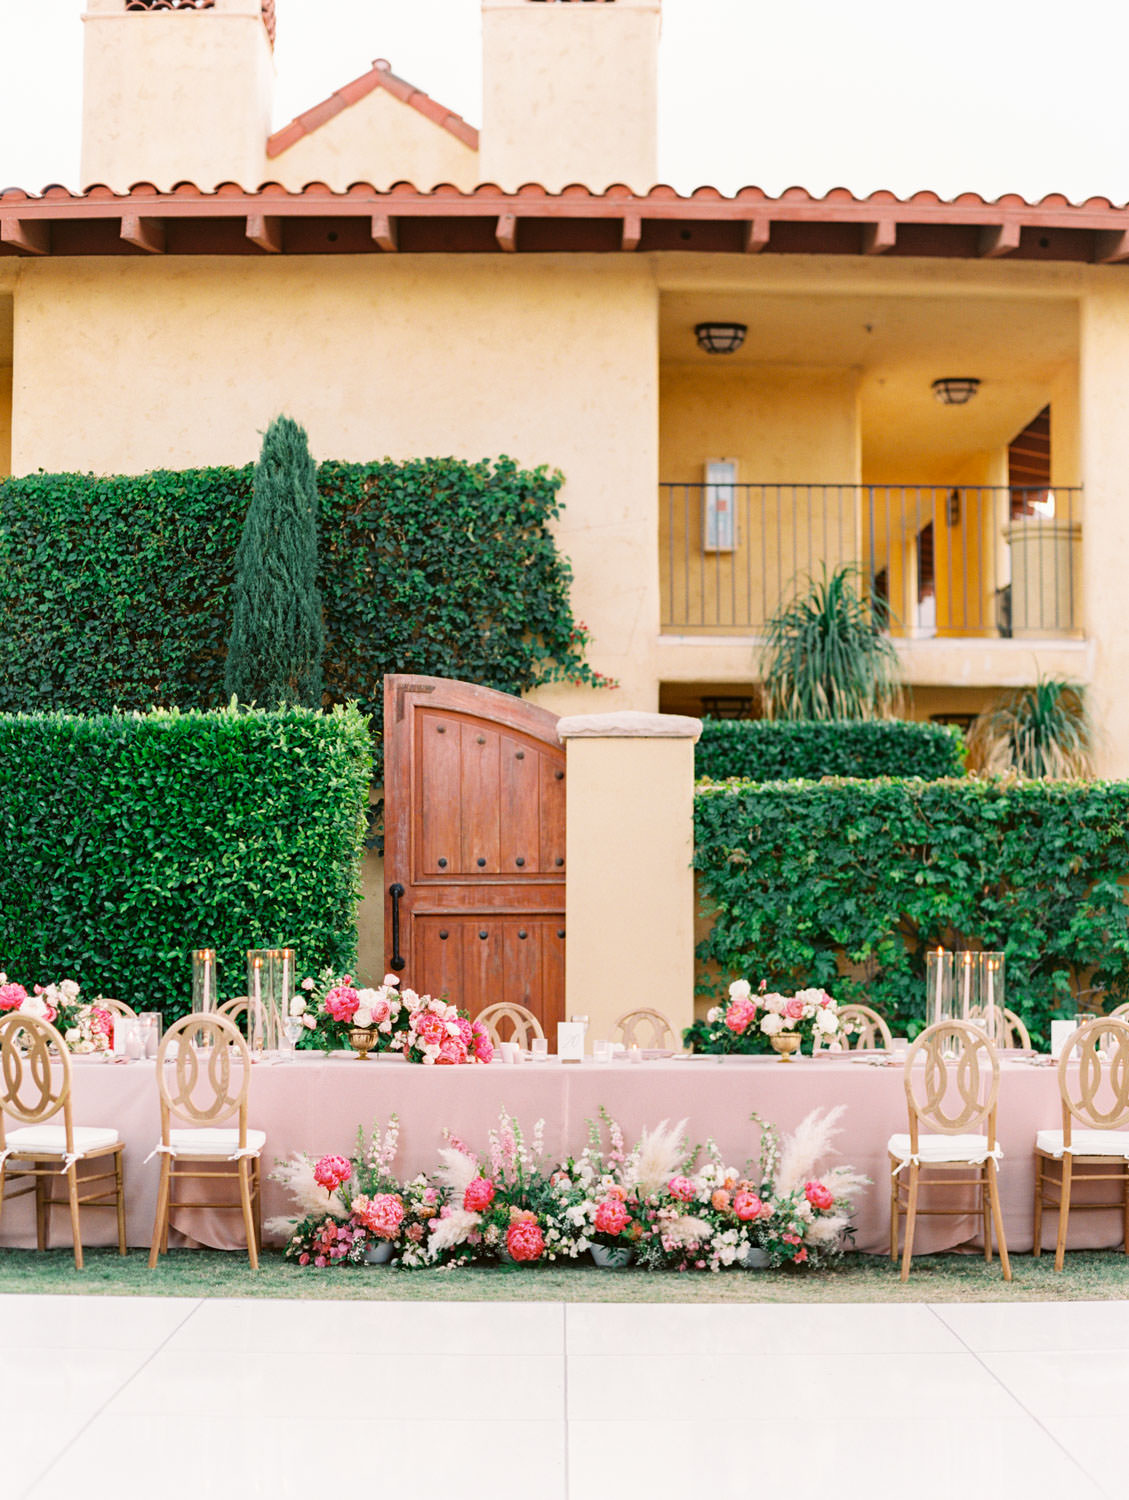 Long table for head table with pink linens and oak Orion chairs. Candles in hurricanes and pampas grass and peony arrangements in front of the bride and groom seats. Pink and ivory bold centerpieces with peonies, sweet peas, ivy, and roses. Miramonte Resort reception on the Mesquite Lawn. Film photography by Cavin Elizabeth.